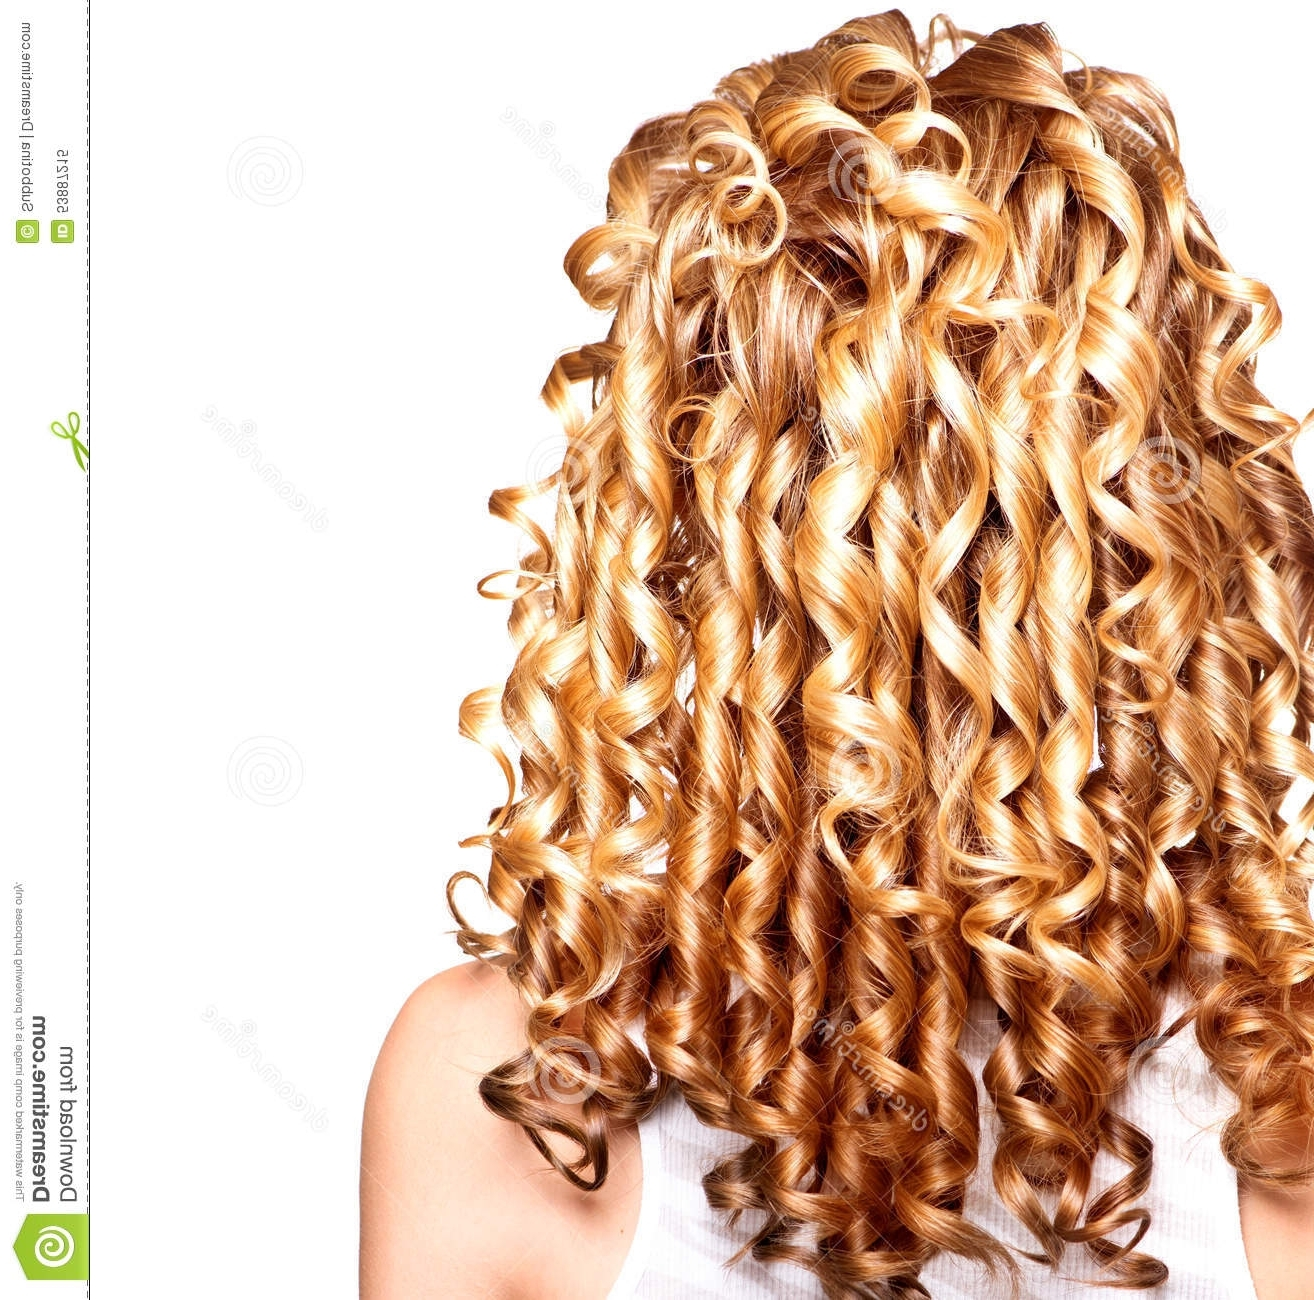 Beauty Girl With Blonde Curly Hair Stock Image – Image Of Lush Inside Most Recently Released Lush And Curly Blonde Hairstyles (View 2 of 20)